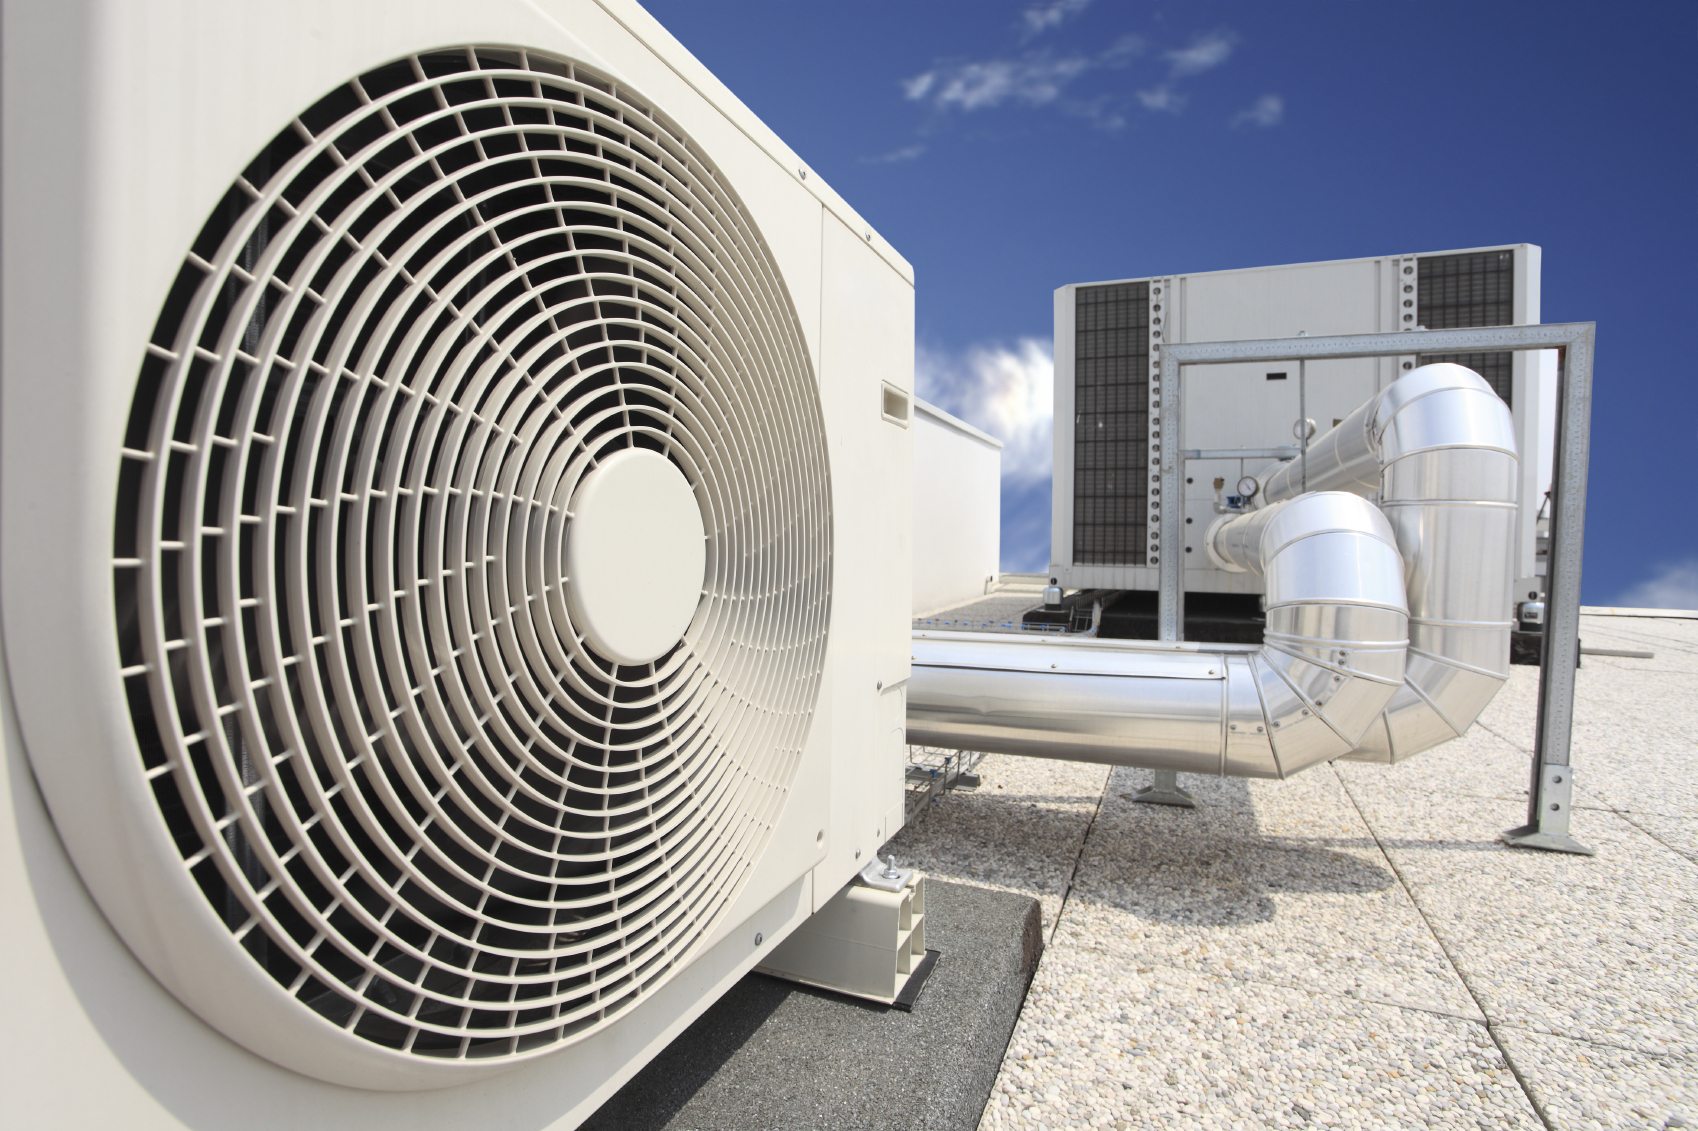 Wilkes Barre, PA AIR CONDITIONING SYSTEMS | HVAC